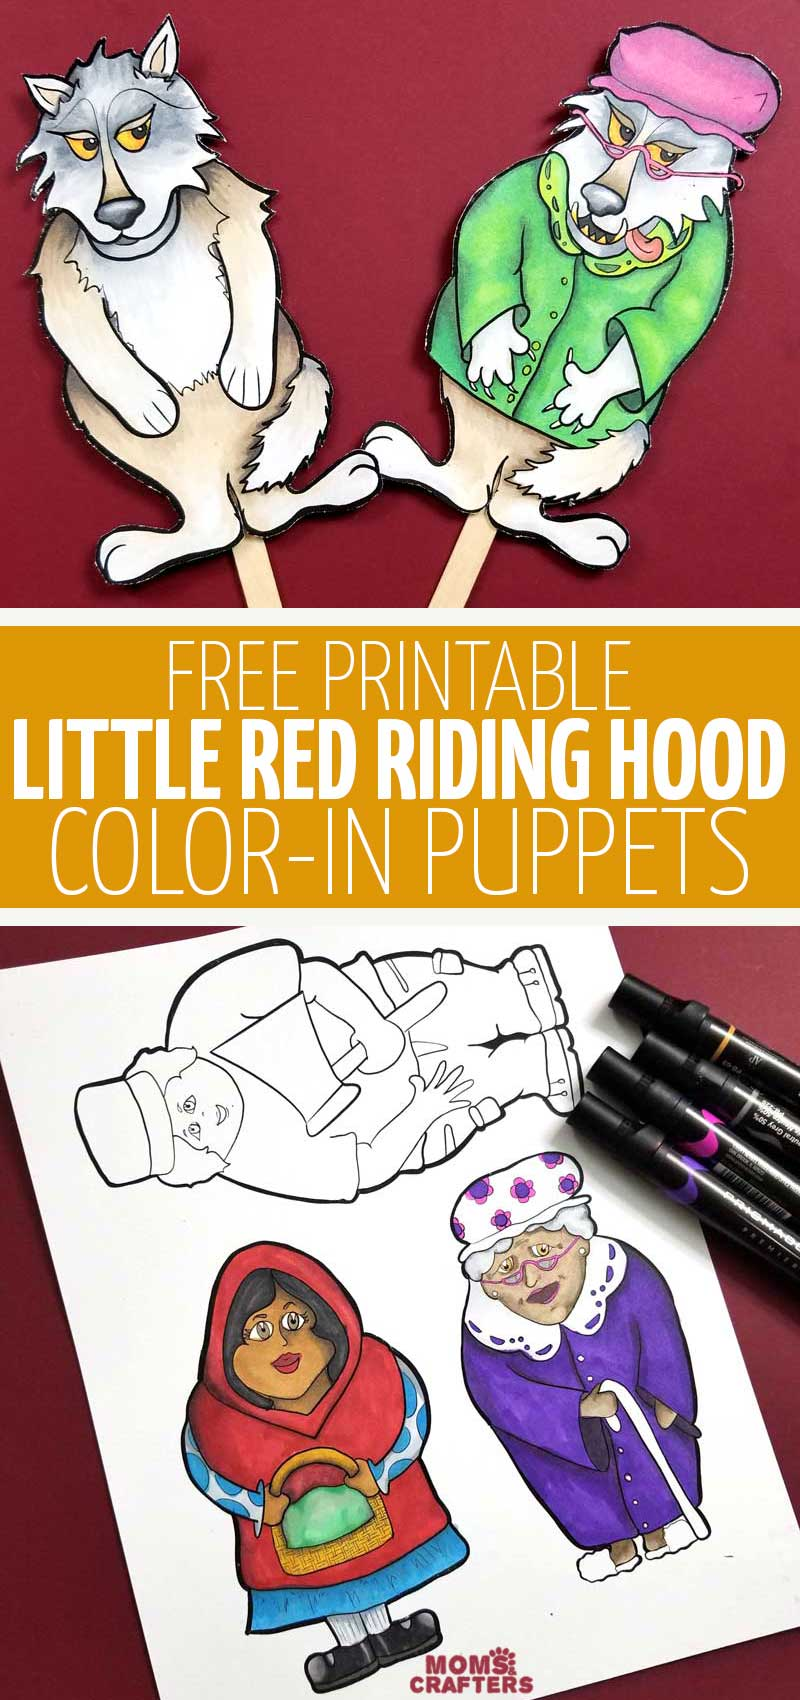 Little Red Riding Hood Puppets To Print Moms And Crafters